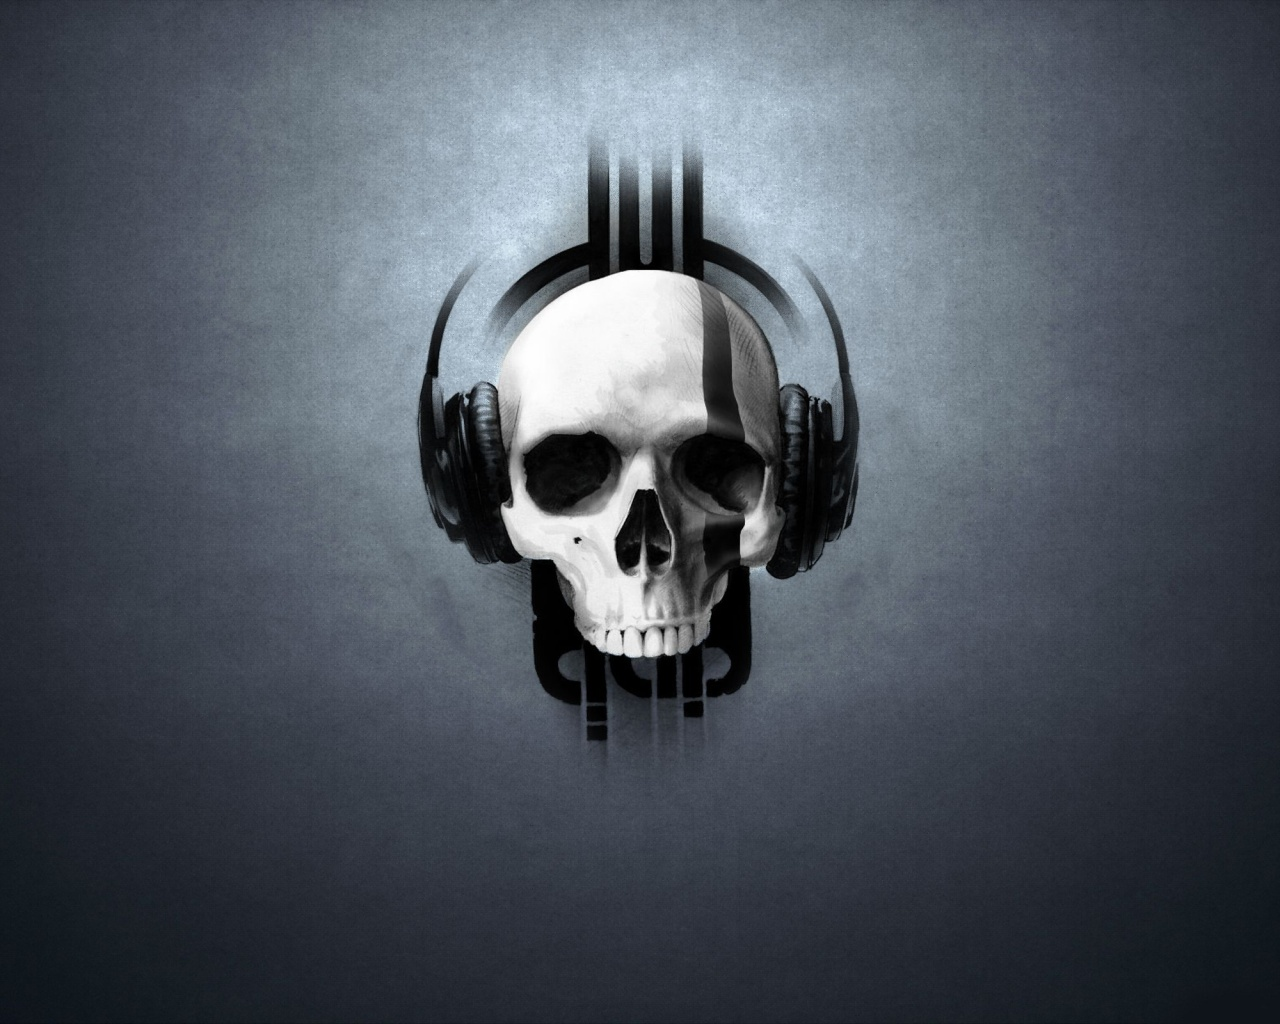 Music skull headphones